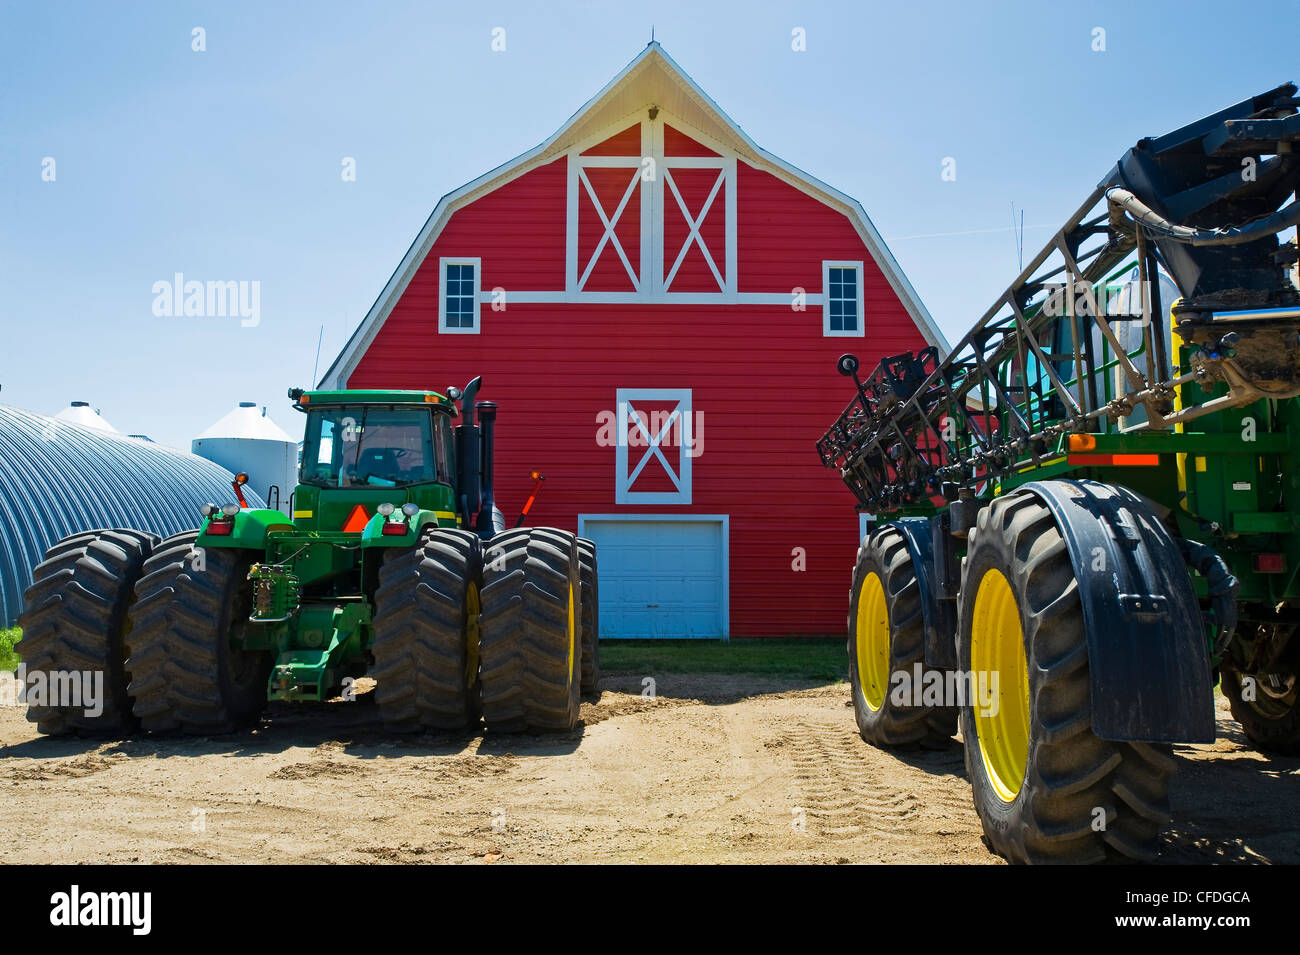 closeup of tractor and sprayer with red barn in the background near Torquay, Saskatchewan, Canada - Stock Image